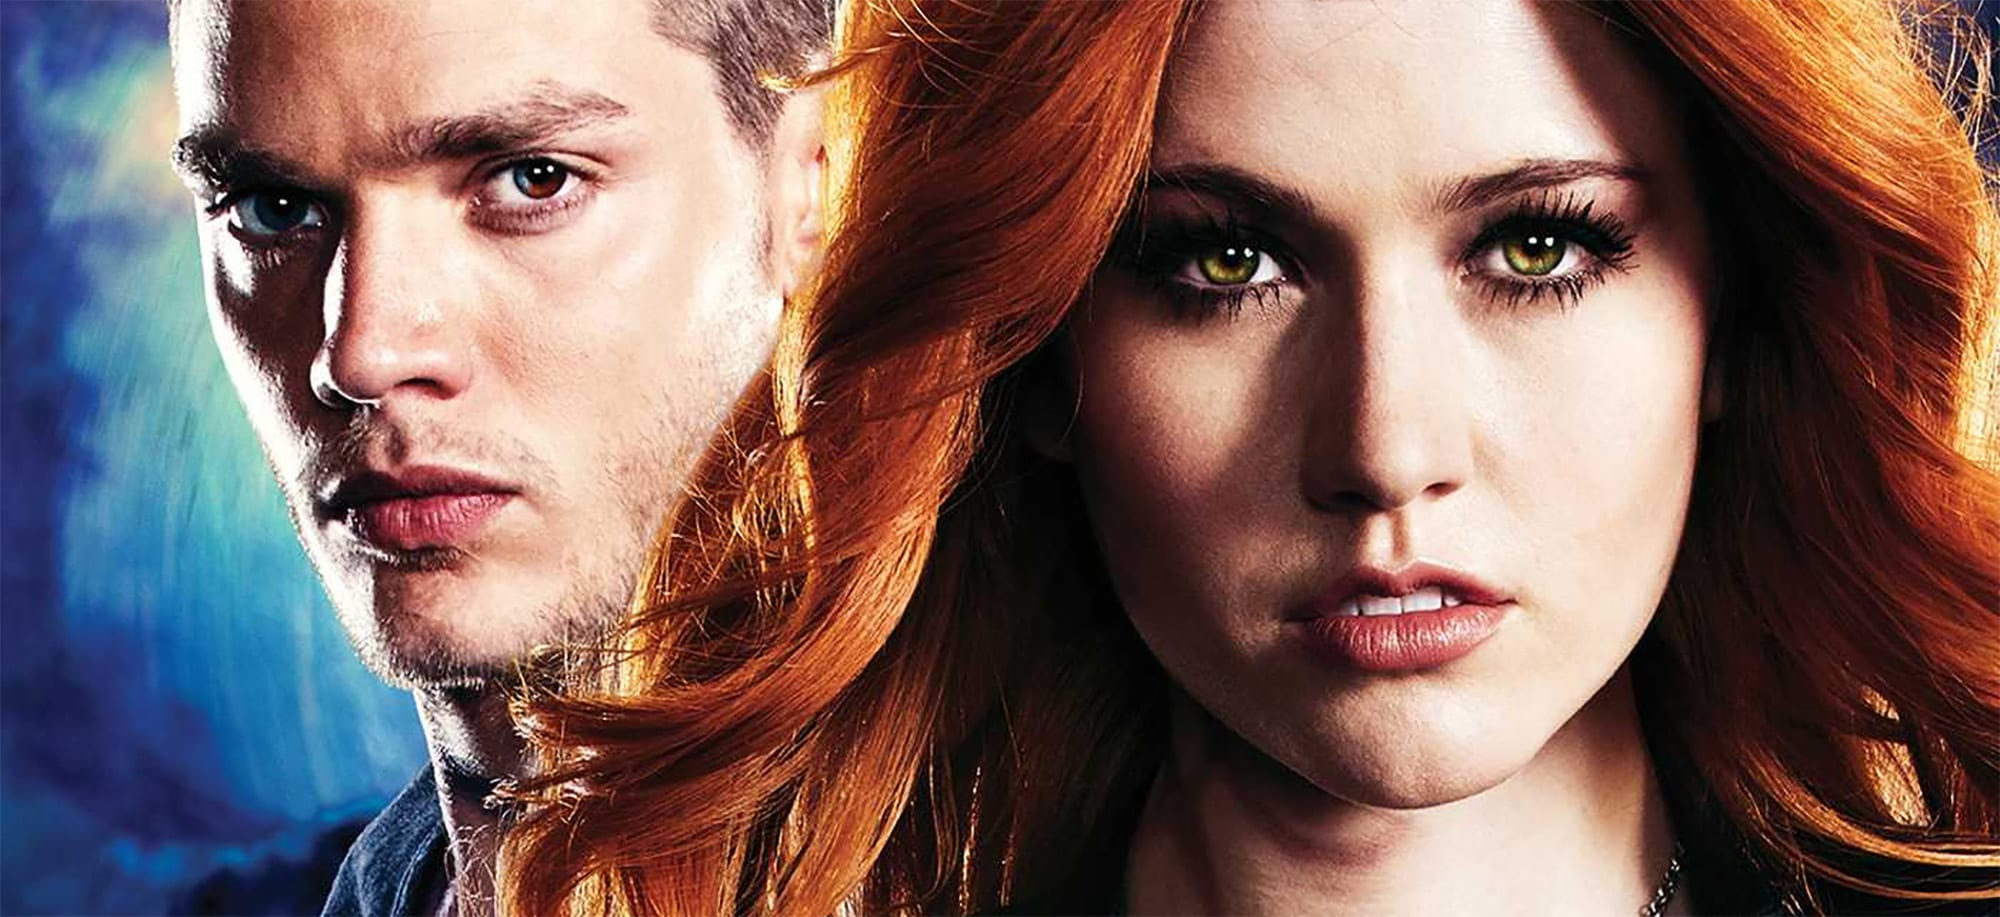 Here are some thoughts on where we'd like to see the plot and characters head to in the future – be sure to let us know your own hopes, ideas, and theories about where you see 'Shadowhunters' heading next.